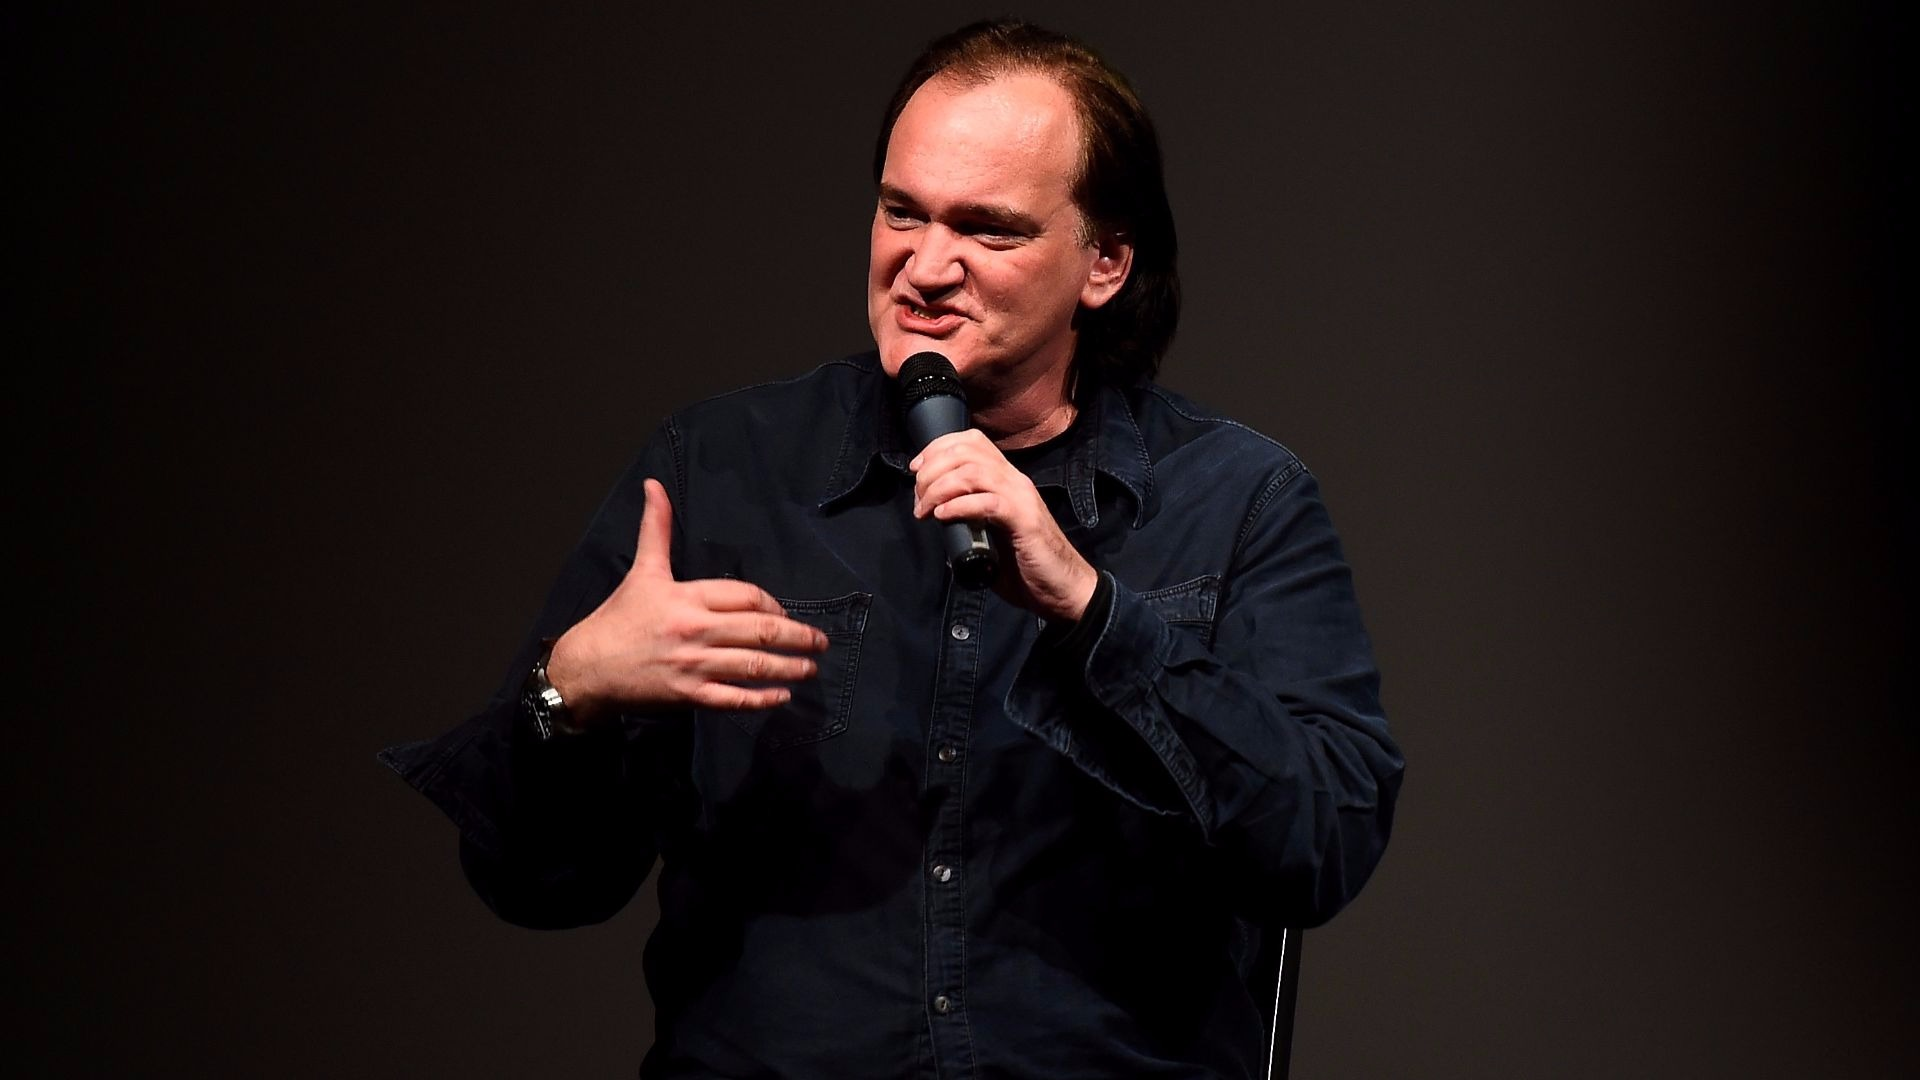 Quentin Tarantino has finished work on the script for his ninth film and it's already shaping up to be something extraordinary. The script is currently doing the rounds with all the major studios and has already drawn comparison with Pulp Fiction both thematically and structurally. It was previously reported that the 54-year-old was putting together a film focusing on the infamous Manson Family murders. However, a report from Deadline indicates that the script, which is currently being referred to as #9, will be a multi-threaded story with the Manson murders just one of several stories set to play out. #9 will be set in Los Angeles, in and around the 1960s and early 1970s and has already attracted interest from several big names. Leonardo DiCaprio, Samuel L. Jackson and Brad Pitt all all thought to have held discussions with Tarantino about starring in the film. Margot Robbie is also rumoured to be interested in appearing in the film, with reports previously suggesting the Wolf of Wall Street actress was being lined up for the part of a fictionalised version of Sharon Tate. Tate was one of the five people murdered during the 1969 incident that saw members of Manson's family invade the home she shared with her husband Roman Polanskia in California. Tate was pregnant at the time of her death. Tarantino is currently shopping the script around Hollywood after severing ties with Miramax and The Weinstein Company in the wake of the allegations levelled at Harvey Weinstein.